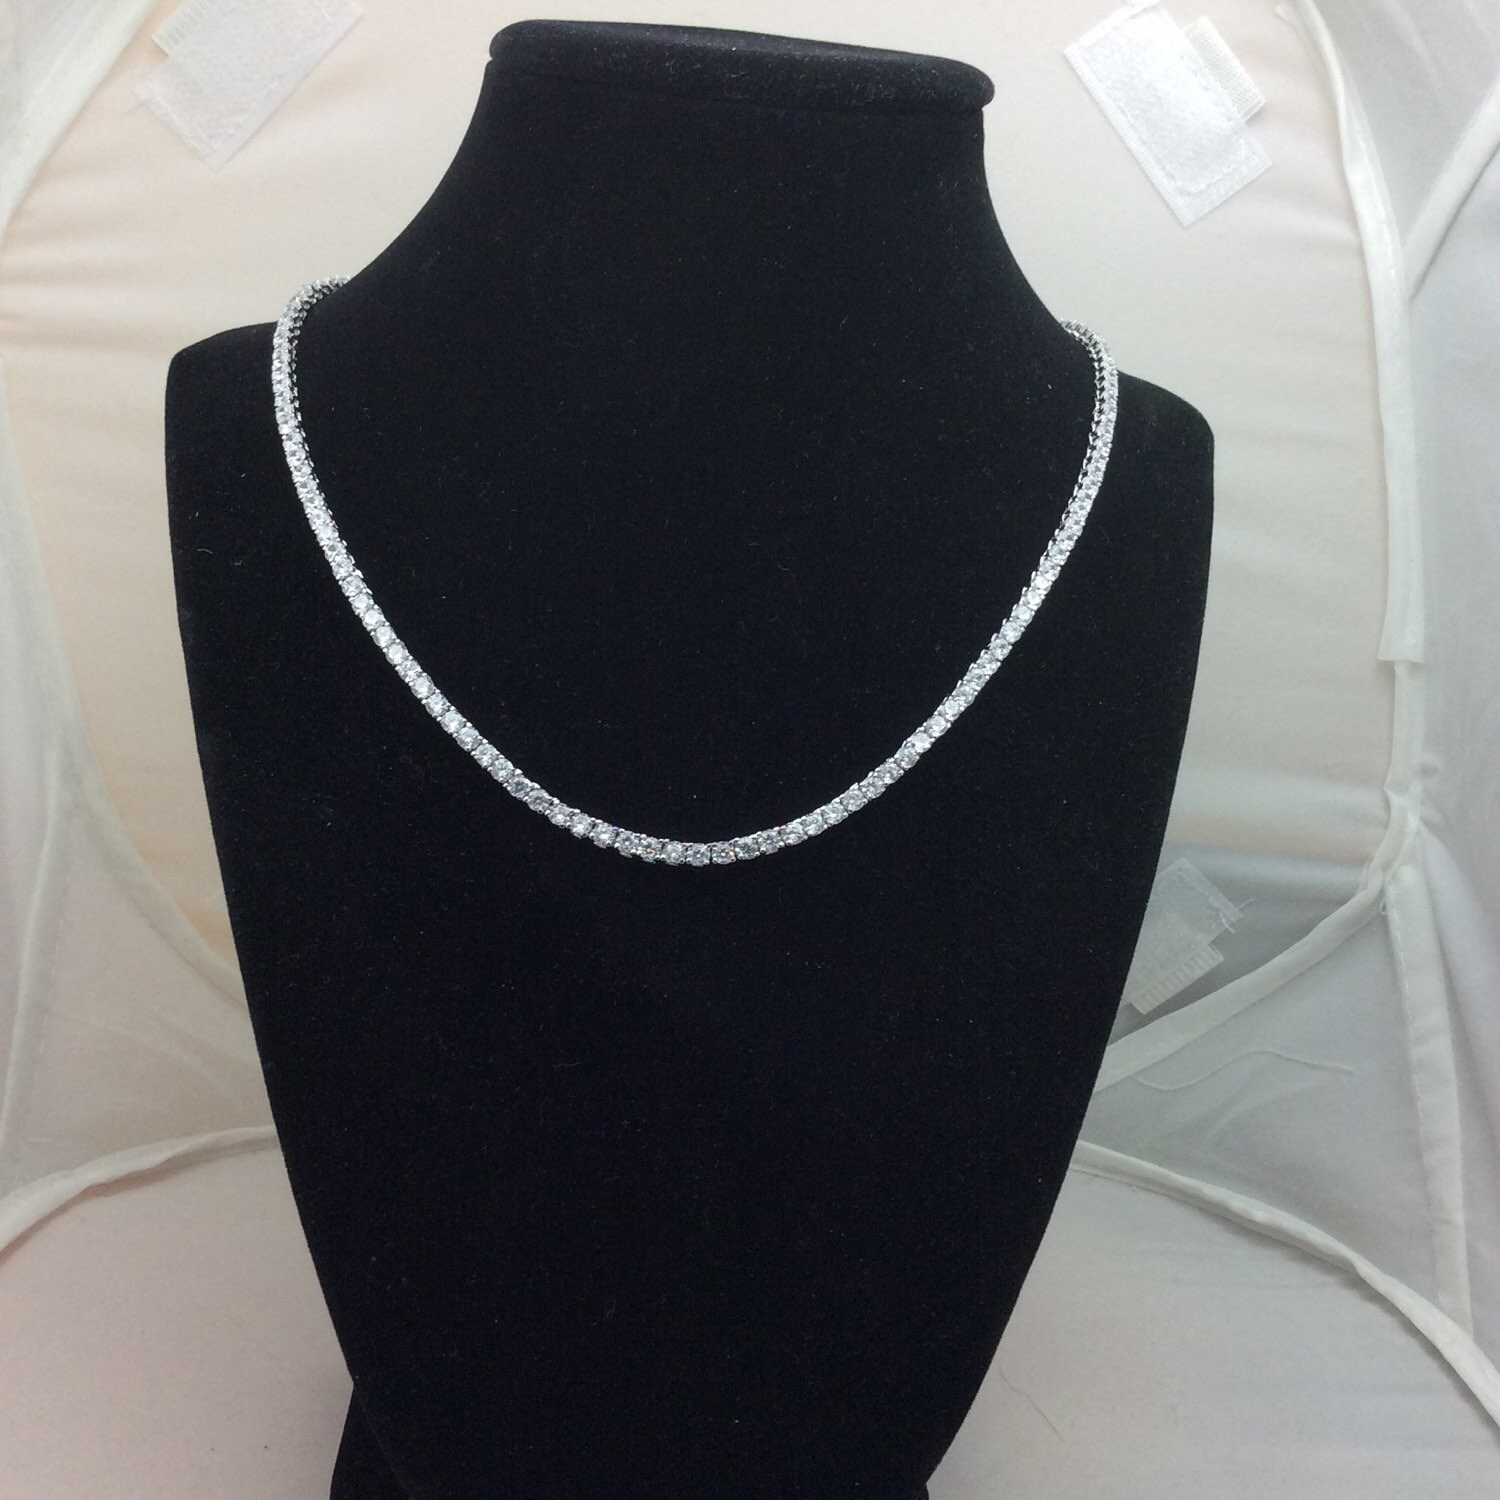 4100919bd92f5 Diamond Lookalike Tennis Necklace CZ (3MM) 18 Beautiful Inches Long